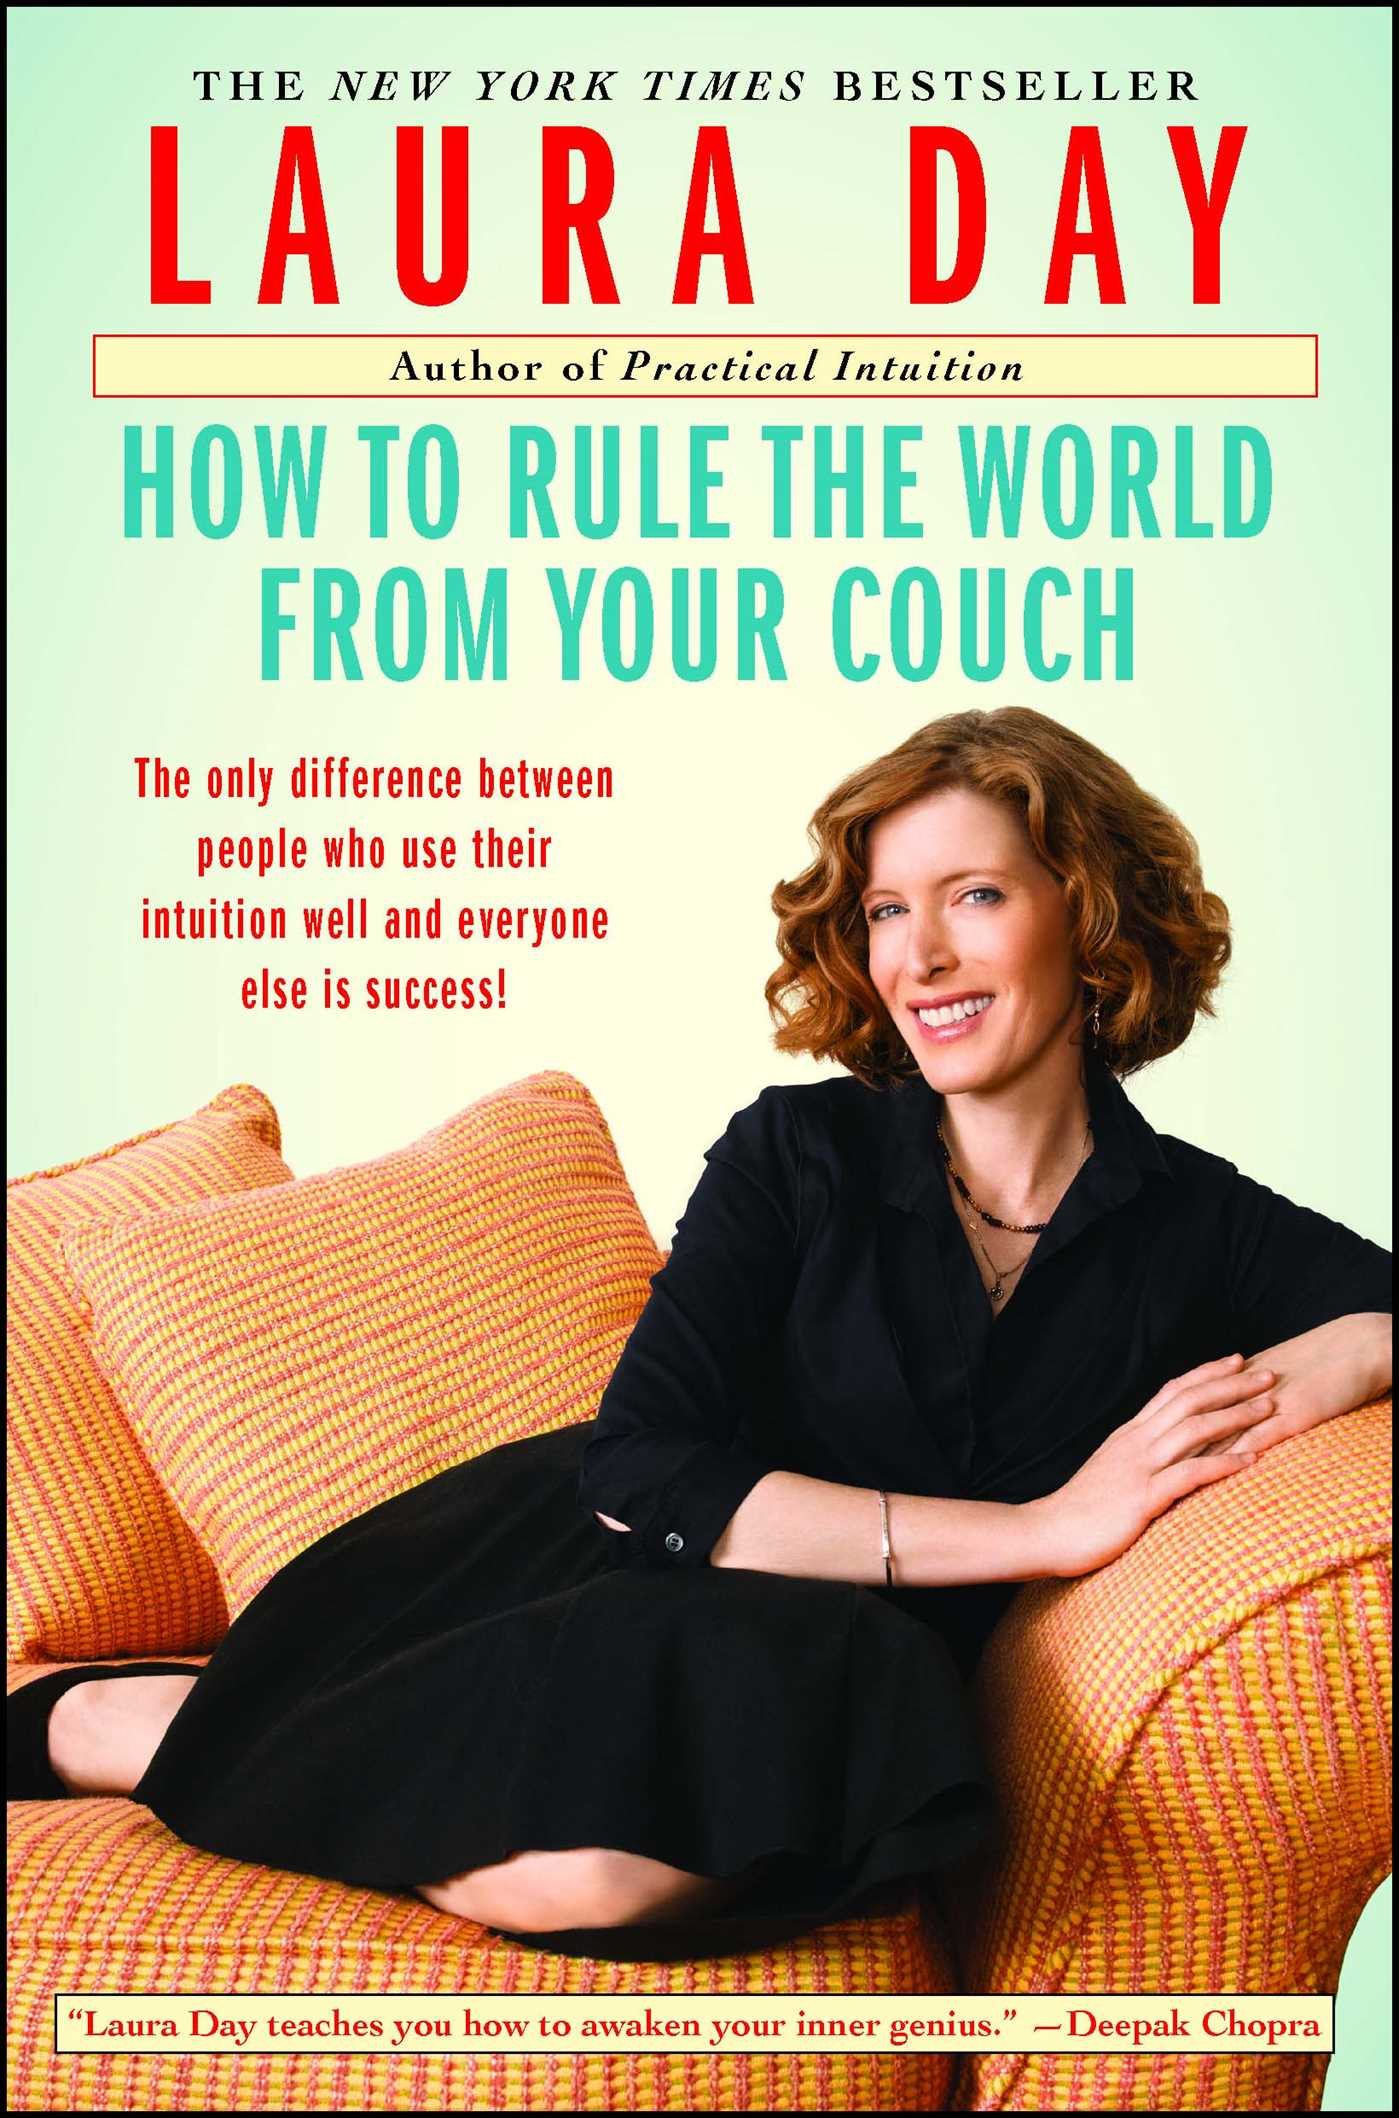 How to rule the world from your couch 9781439123584 hr